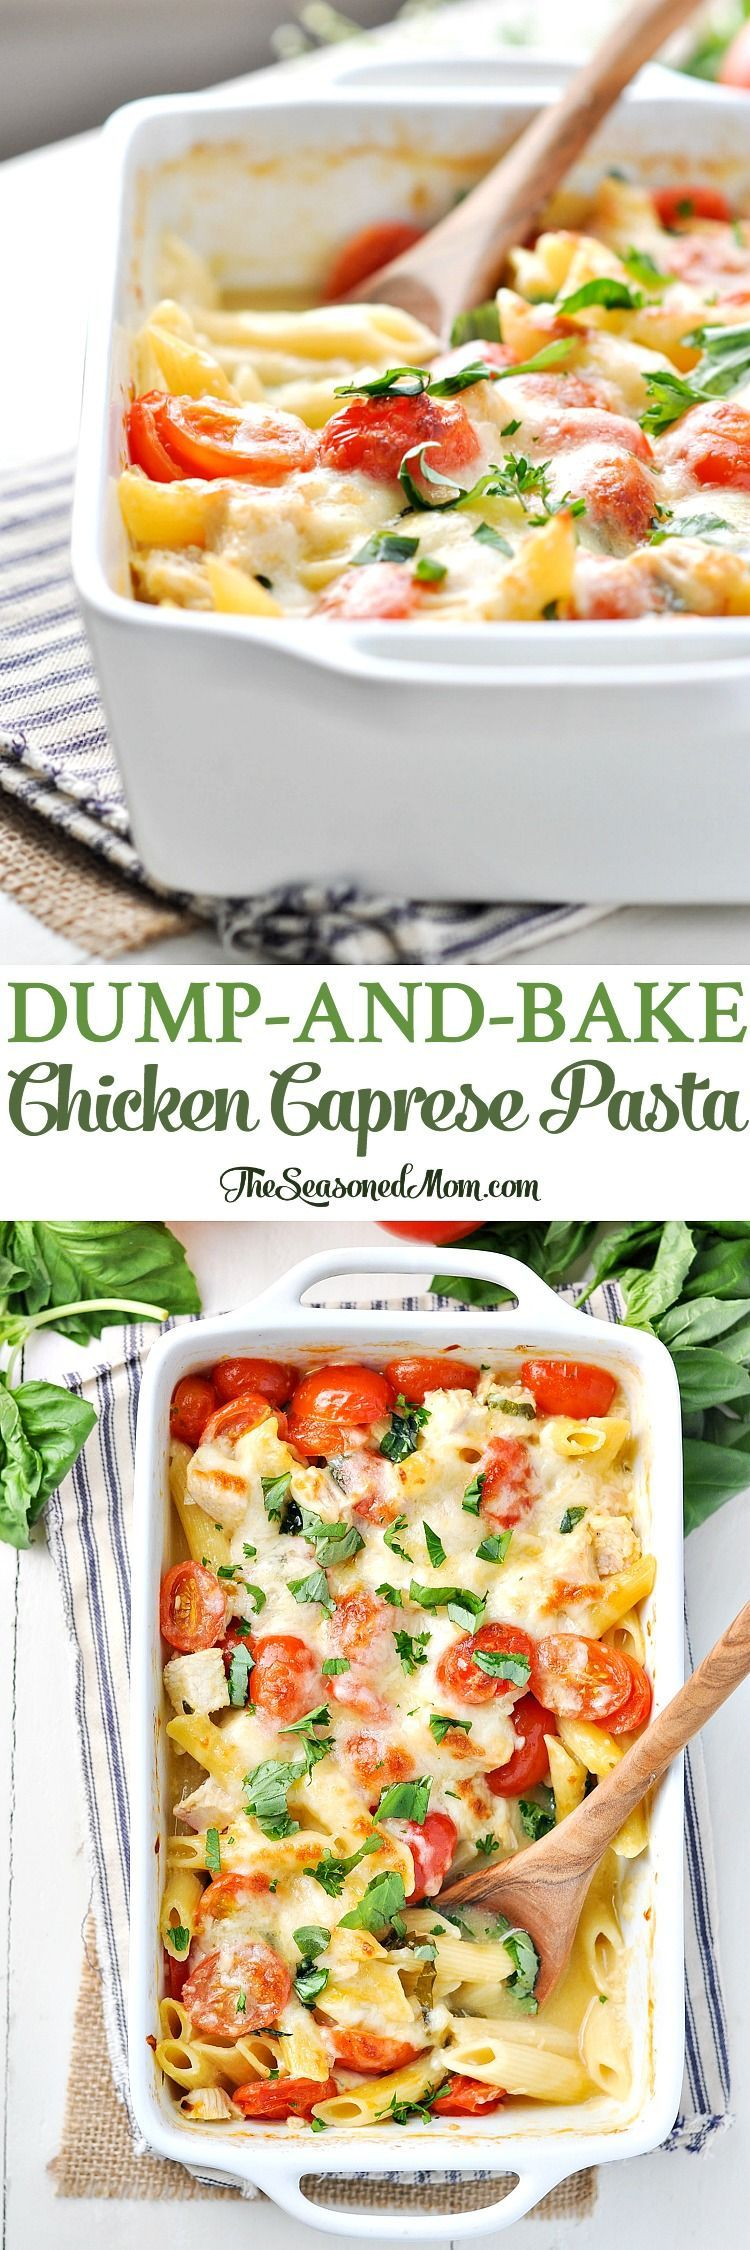 Chicken Caprese Pasta Dump-and-Bake Chicken Caprese Pasta! Maybe grill some chicken on the side instead of in the dishDump-and-Bake Chicken Caprese Pasta! Maybe grill some chicken on the side instead of in the dish